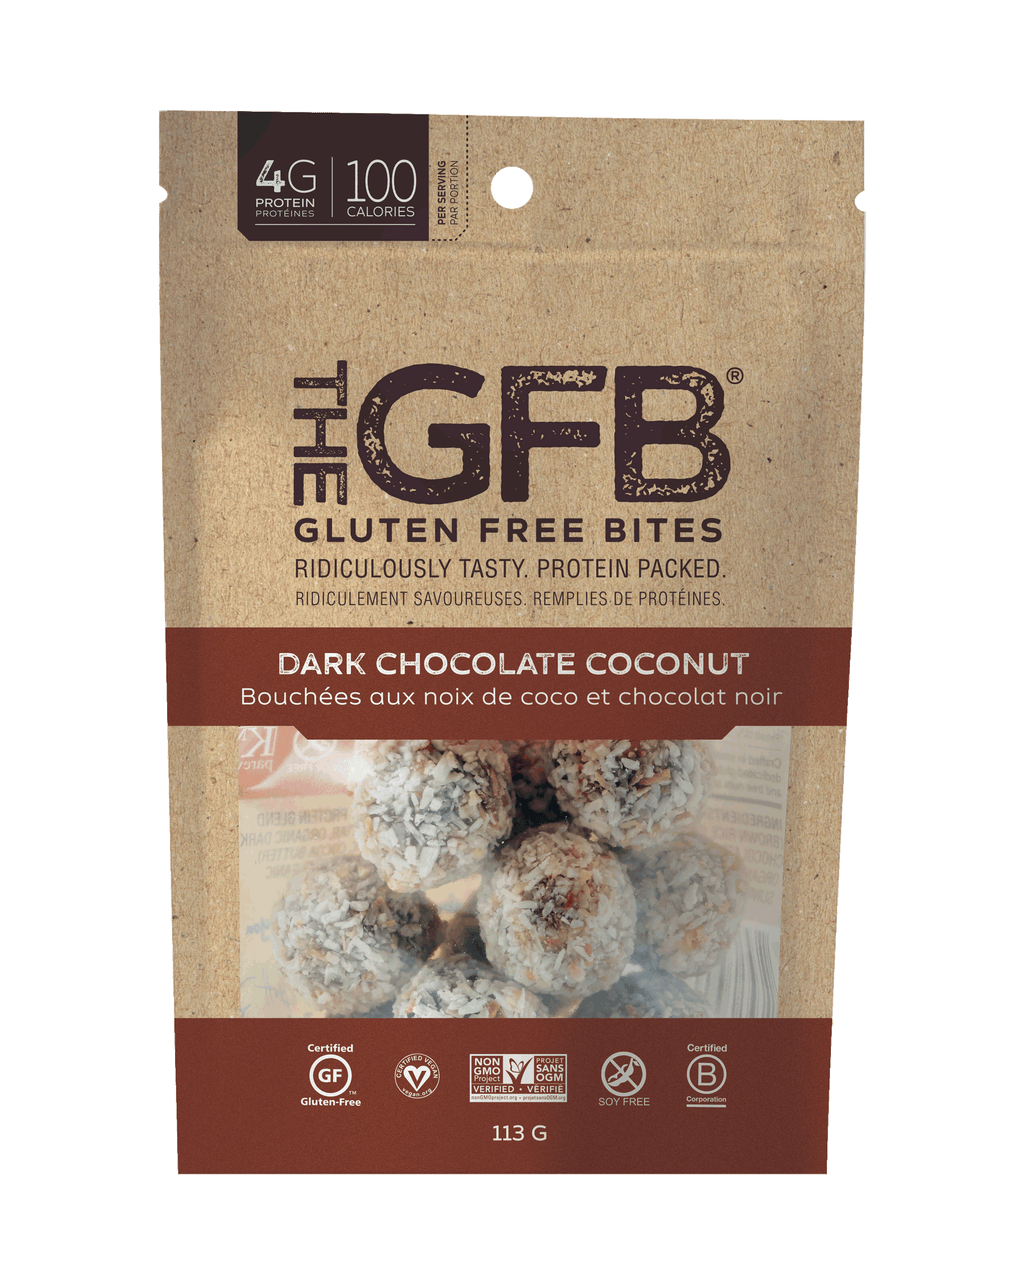 The GFB Gluten Free Bites